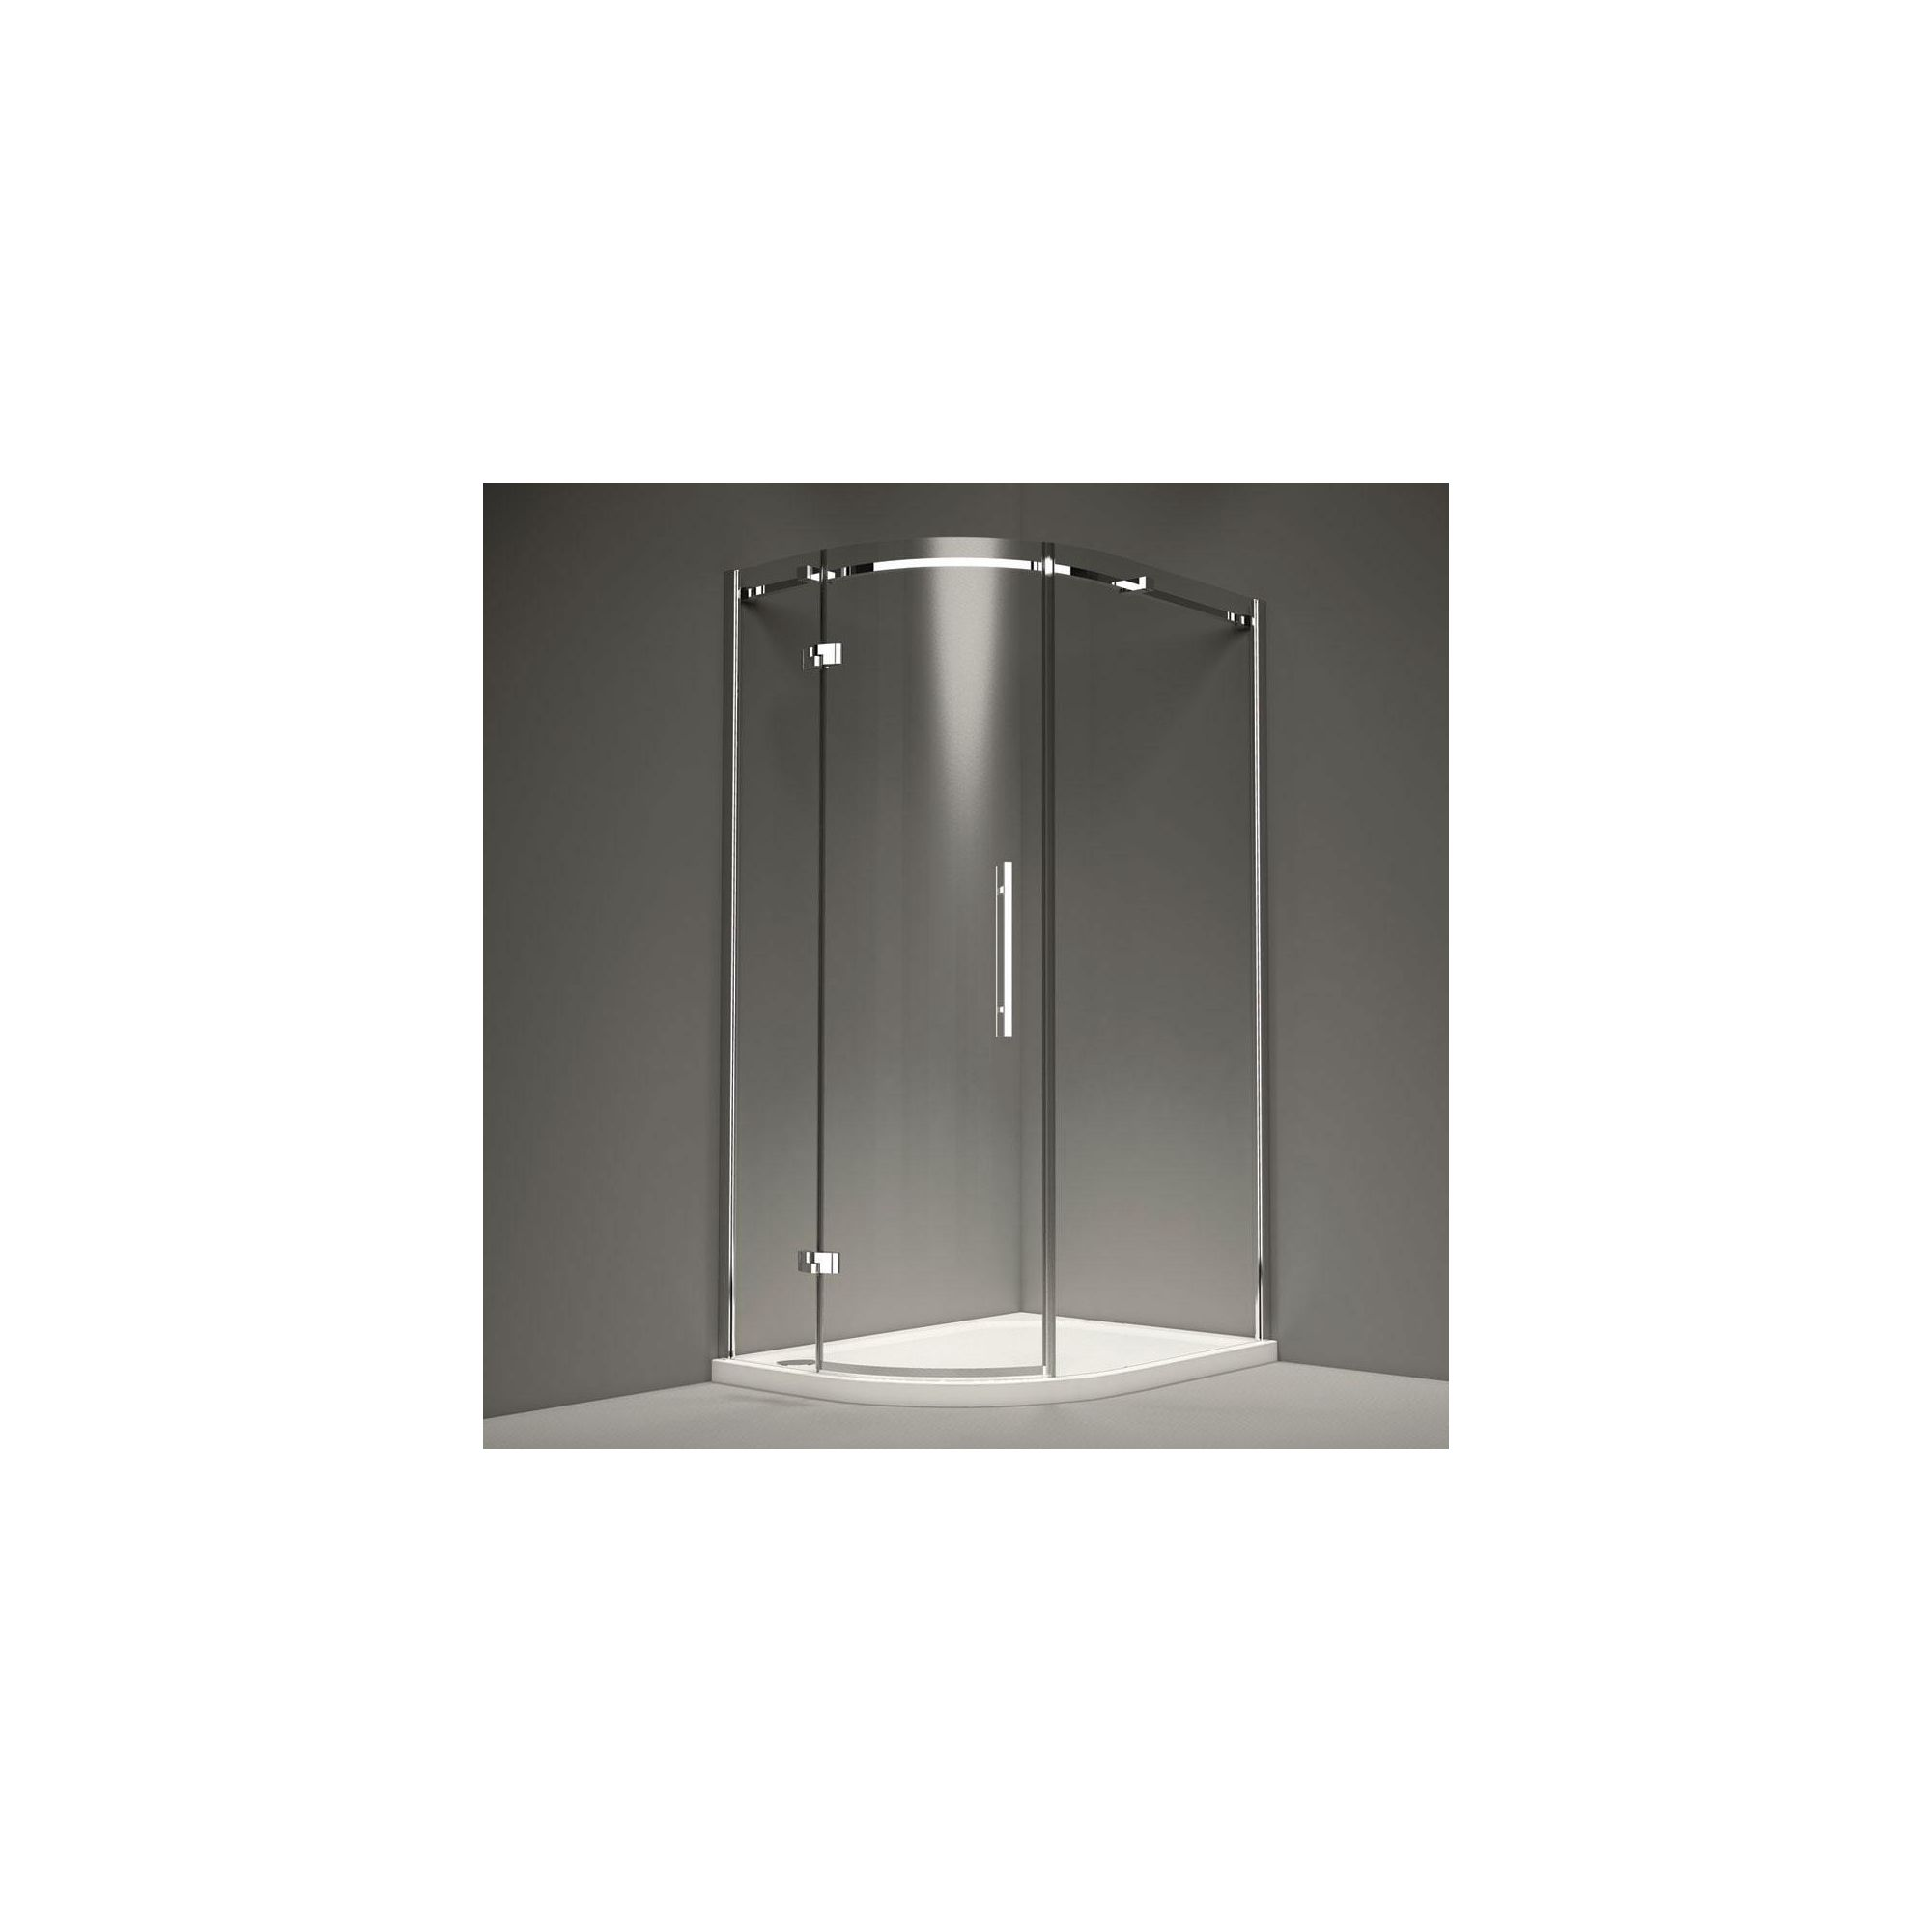 Merlyn Series 9 Offset Quadrant Shower Door, 1200mm x 800mm, 8mm Glass, Left Handed at Tesco Direct